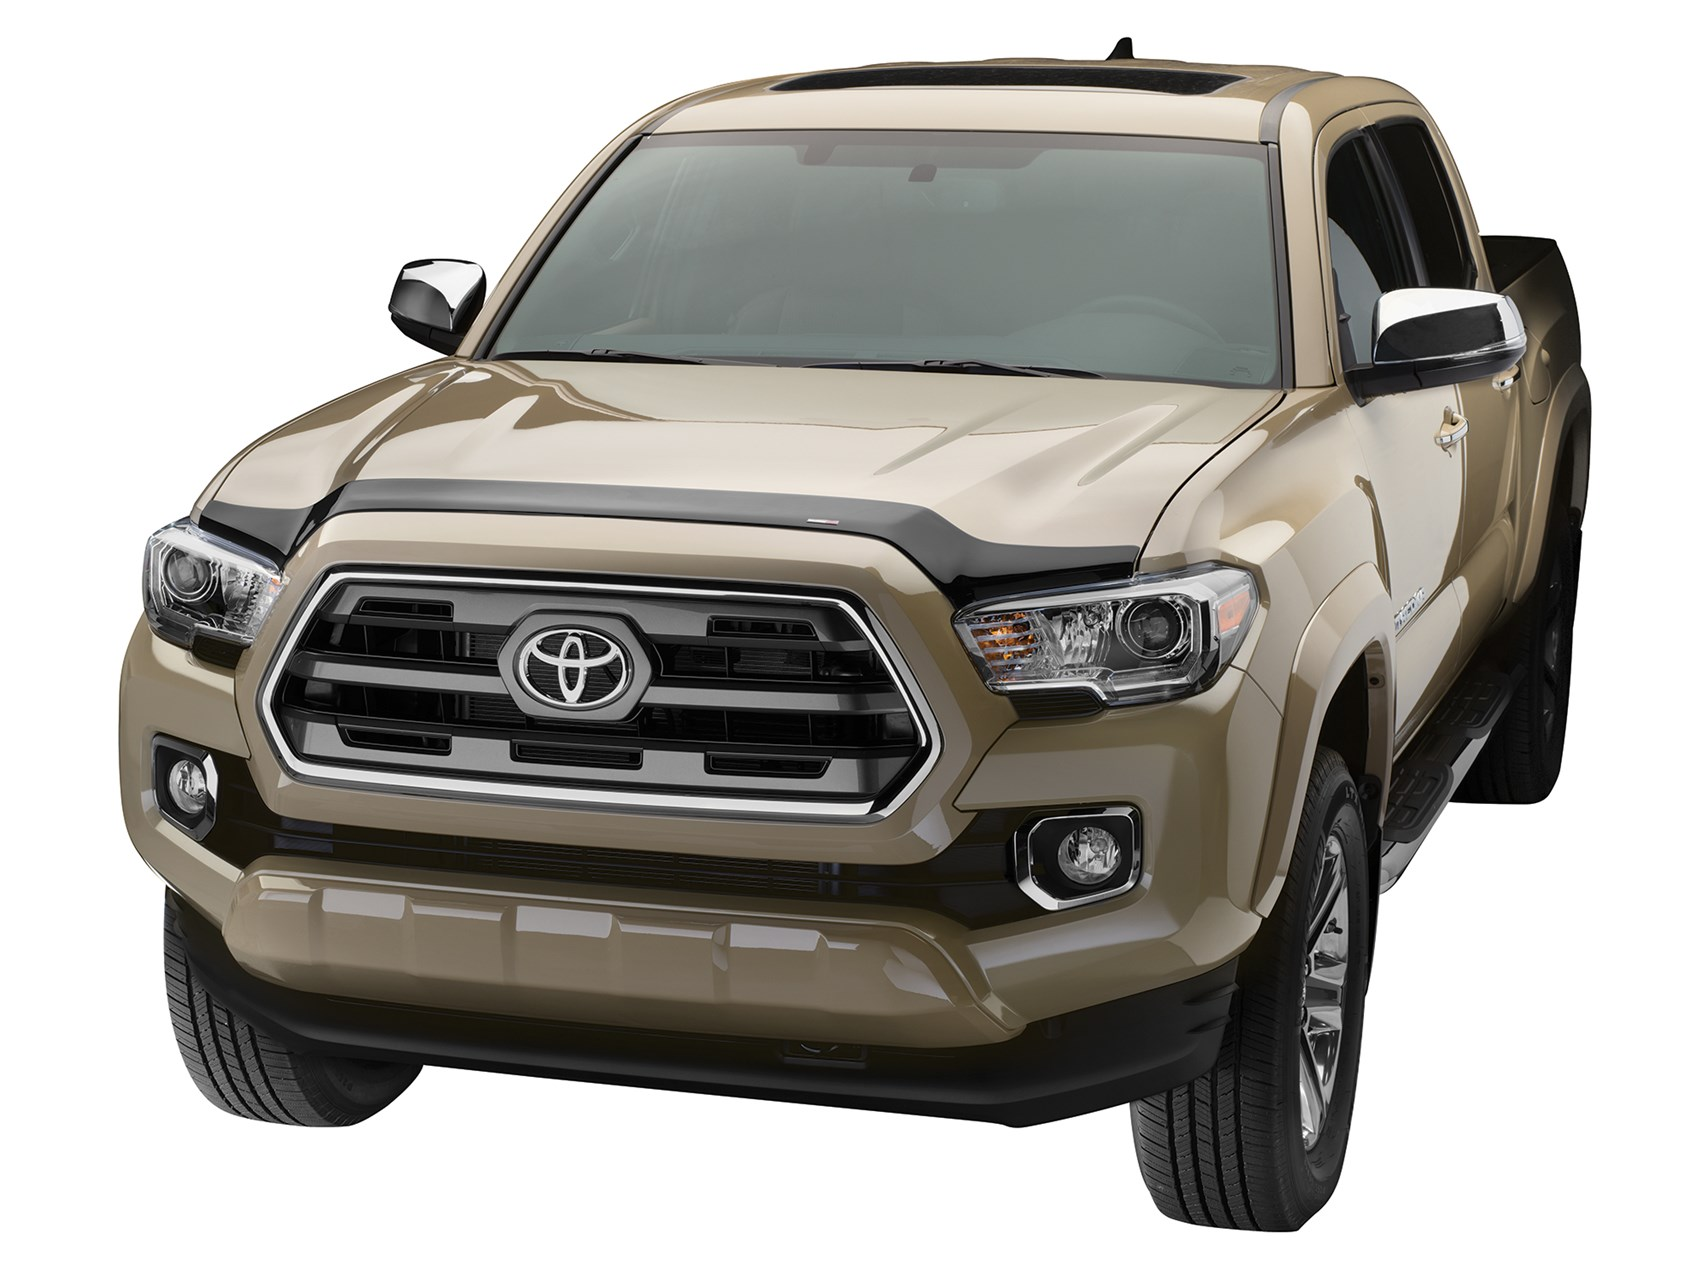 Weathertech Pure Tacoma Accessories Parts And